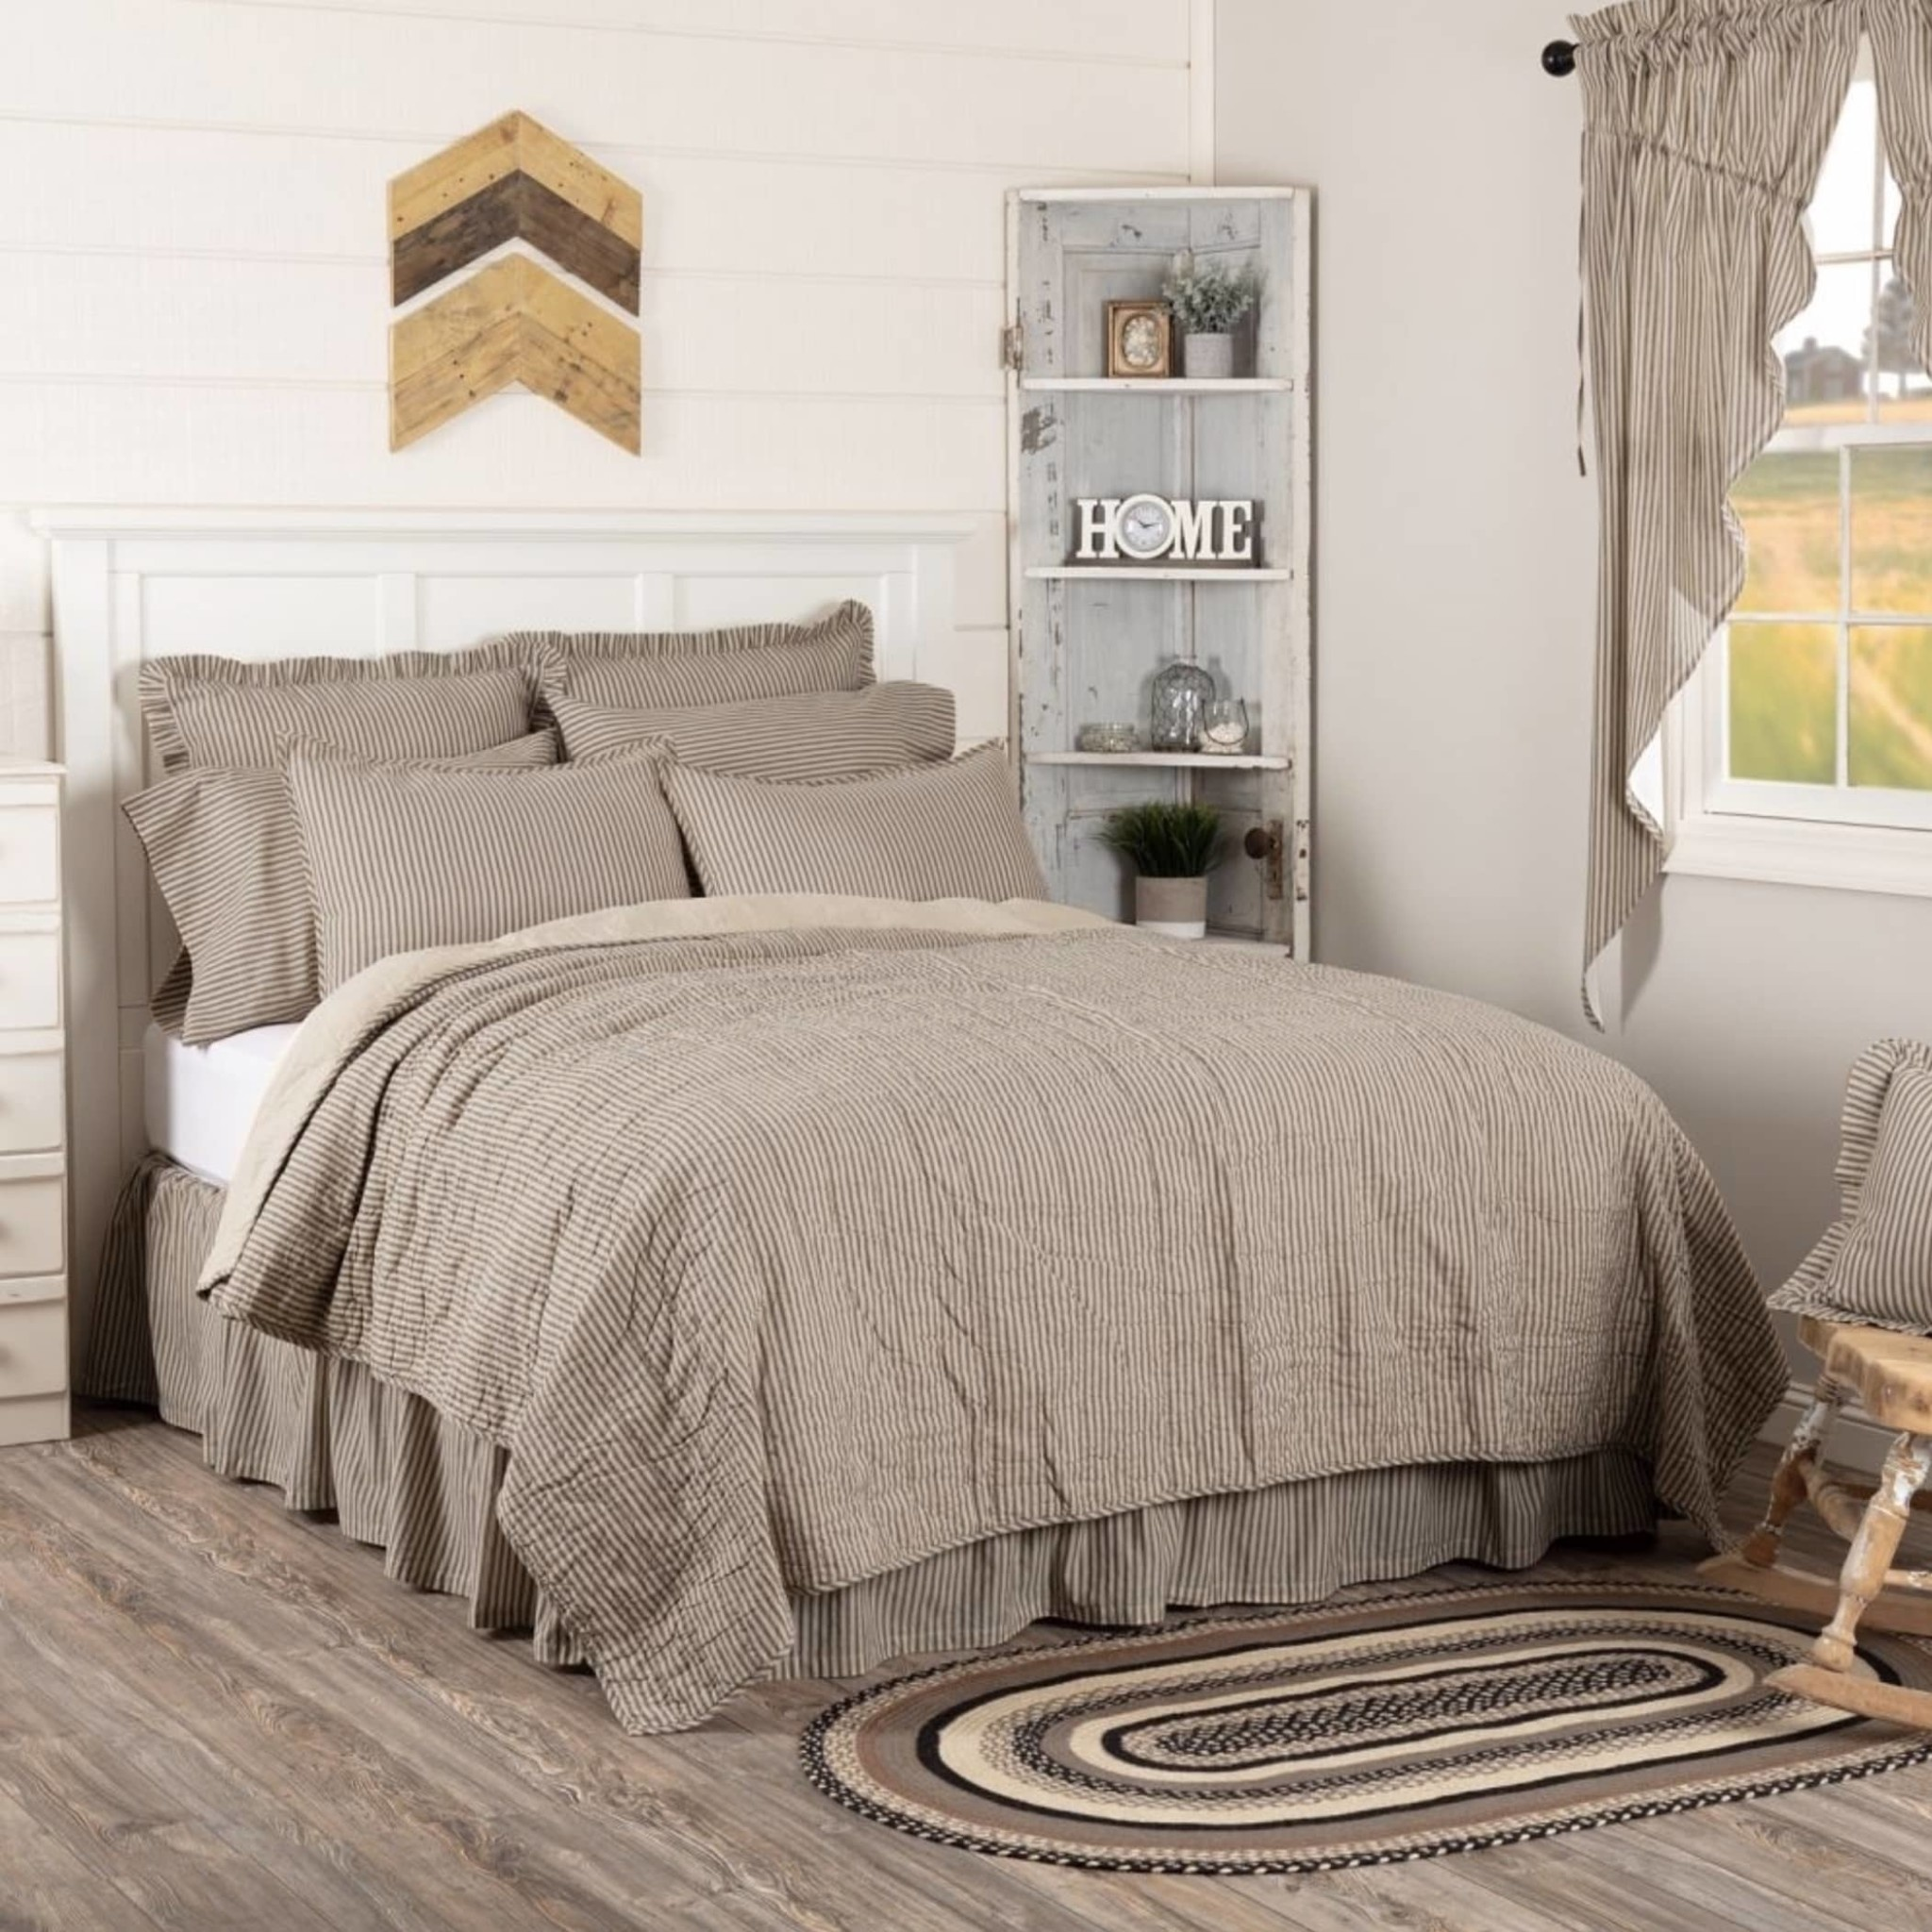 """VHC Brands Sawyer Mill Charcoal Ticking Stripe King Quilt Coverlet - 105"""" W X 95"""" L"""